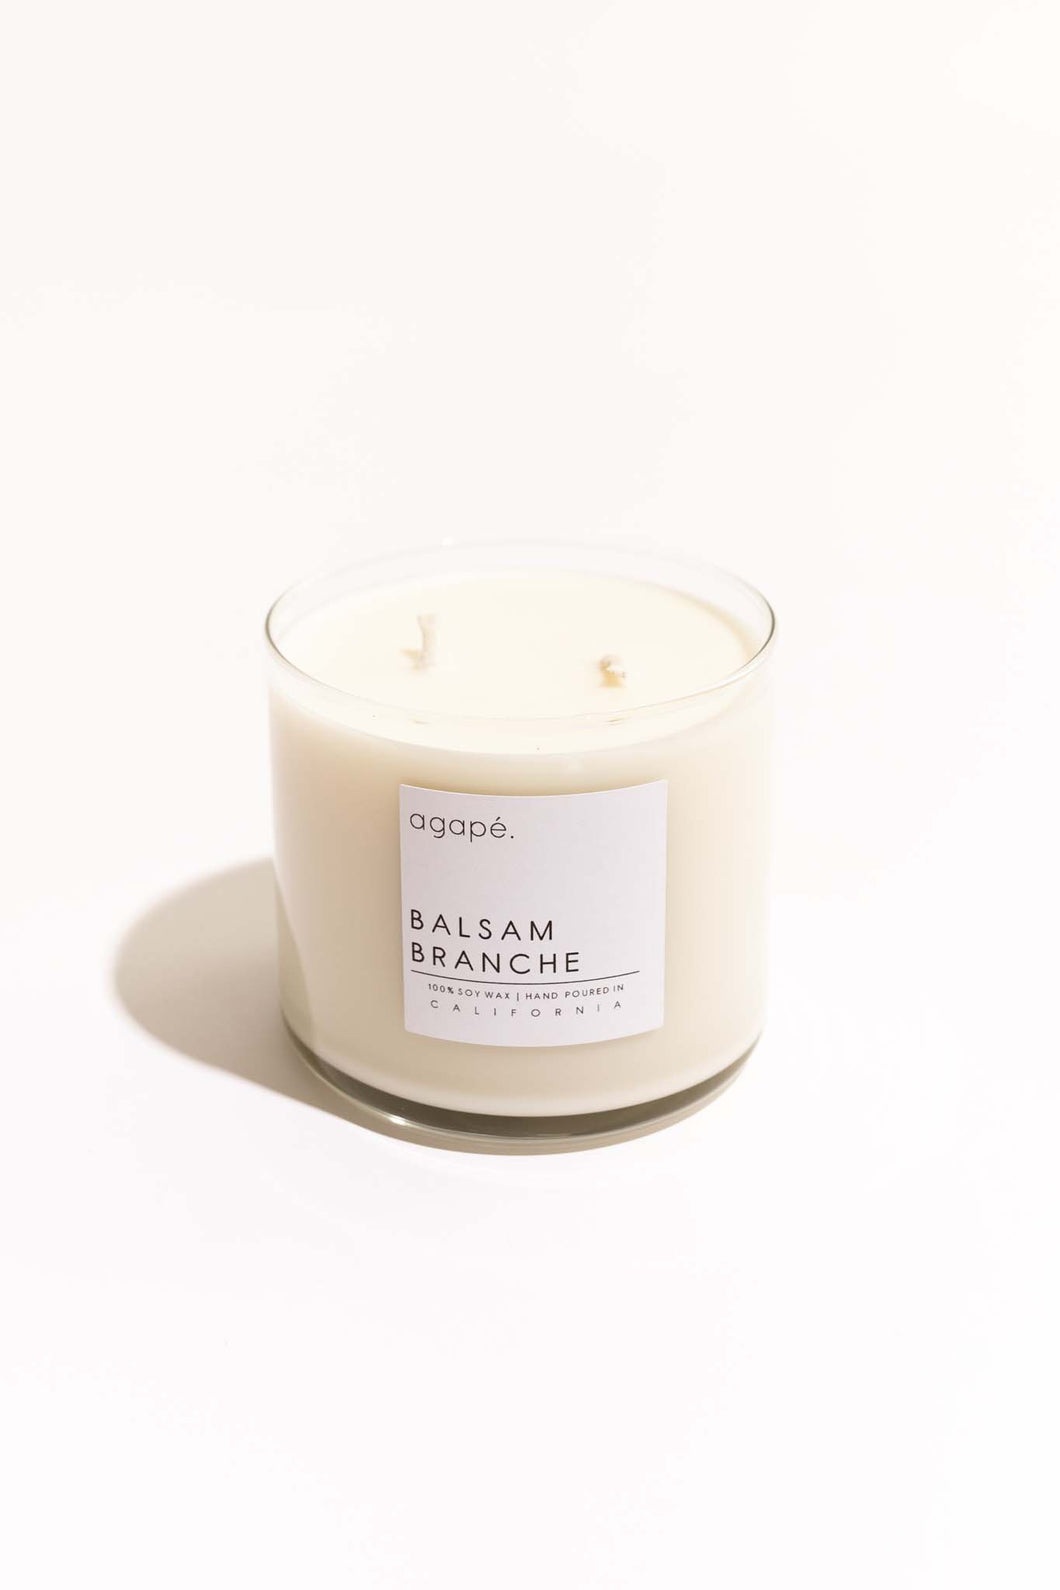 Balsam Branche Double Wick Candle - 18 oz